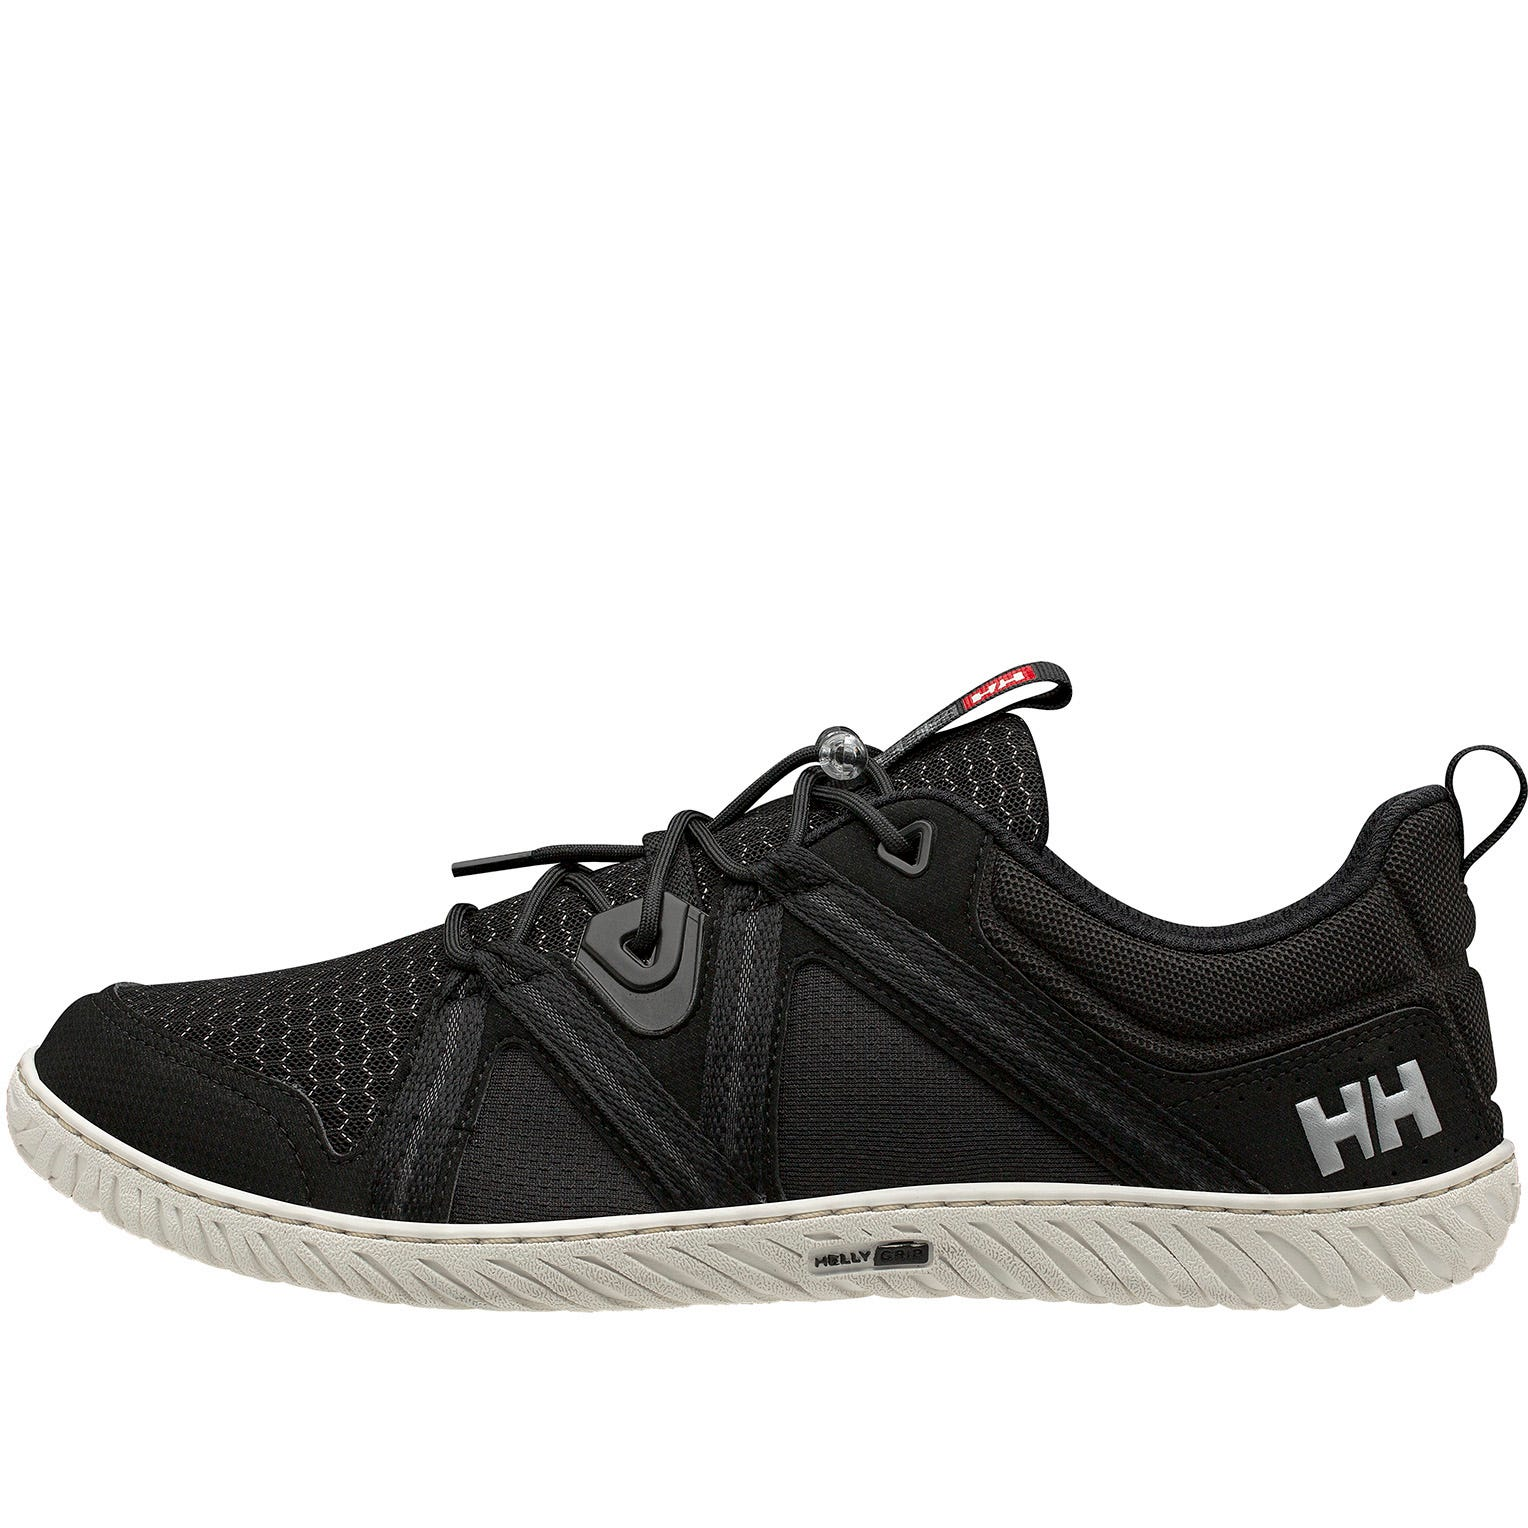 Helly Hansen Hp Foil F1 Sailing Shoe Black 7